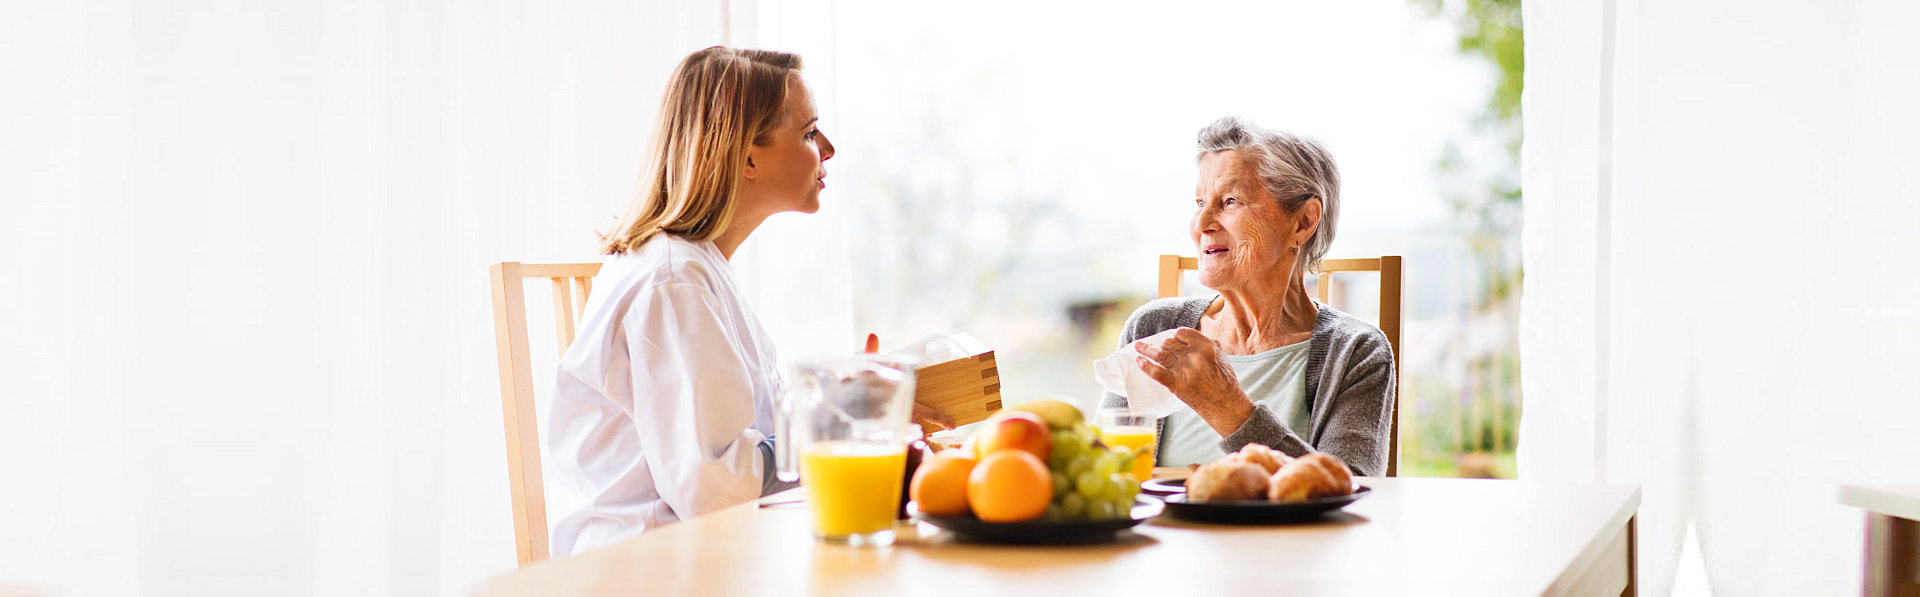 caregiver and old woman having a conversation while the old woman having her meal